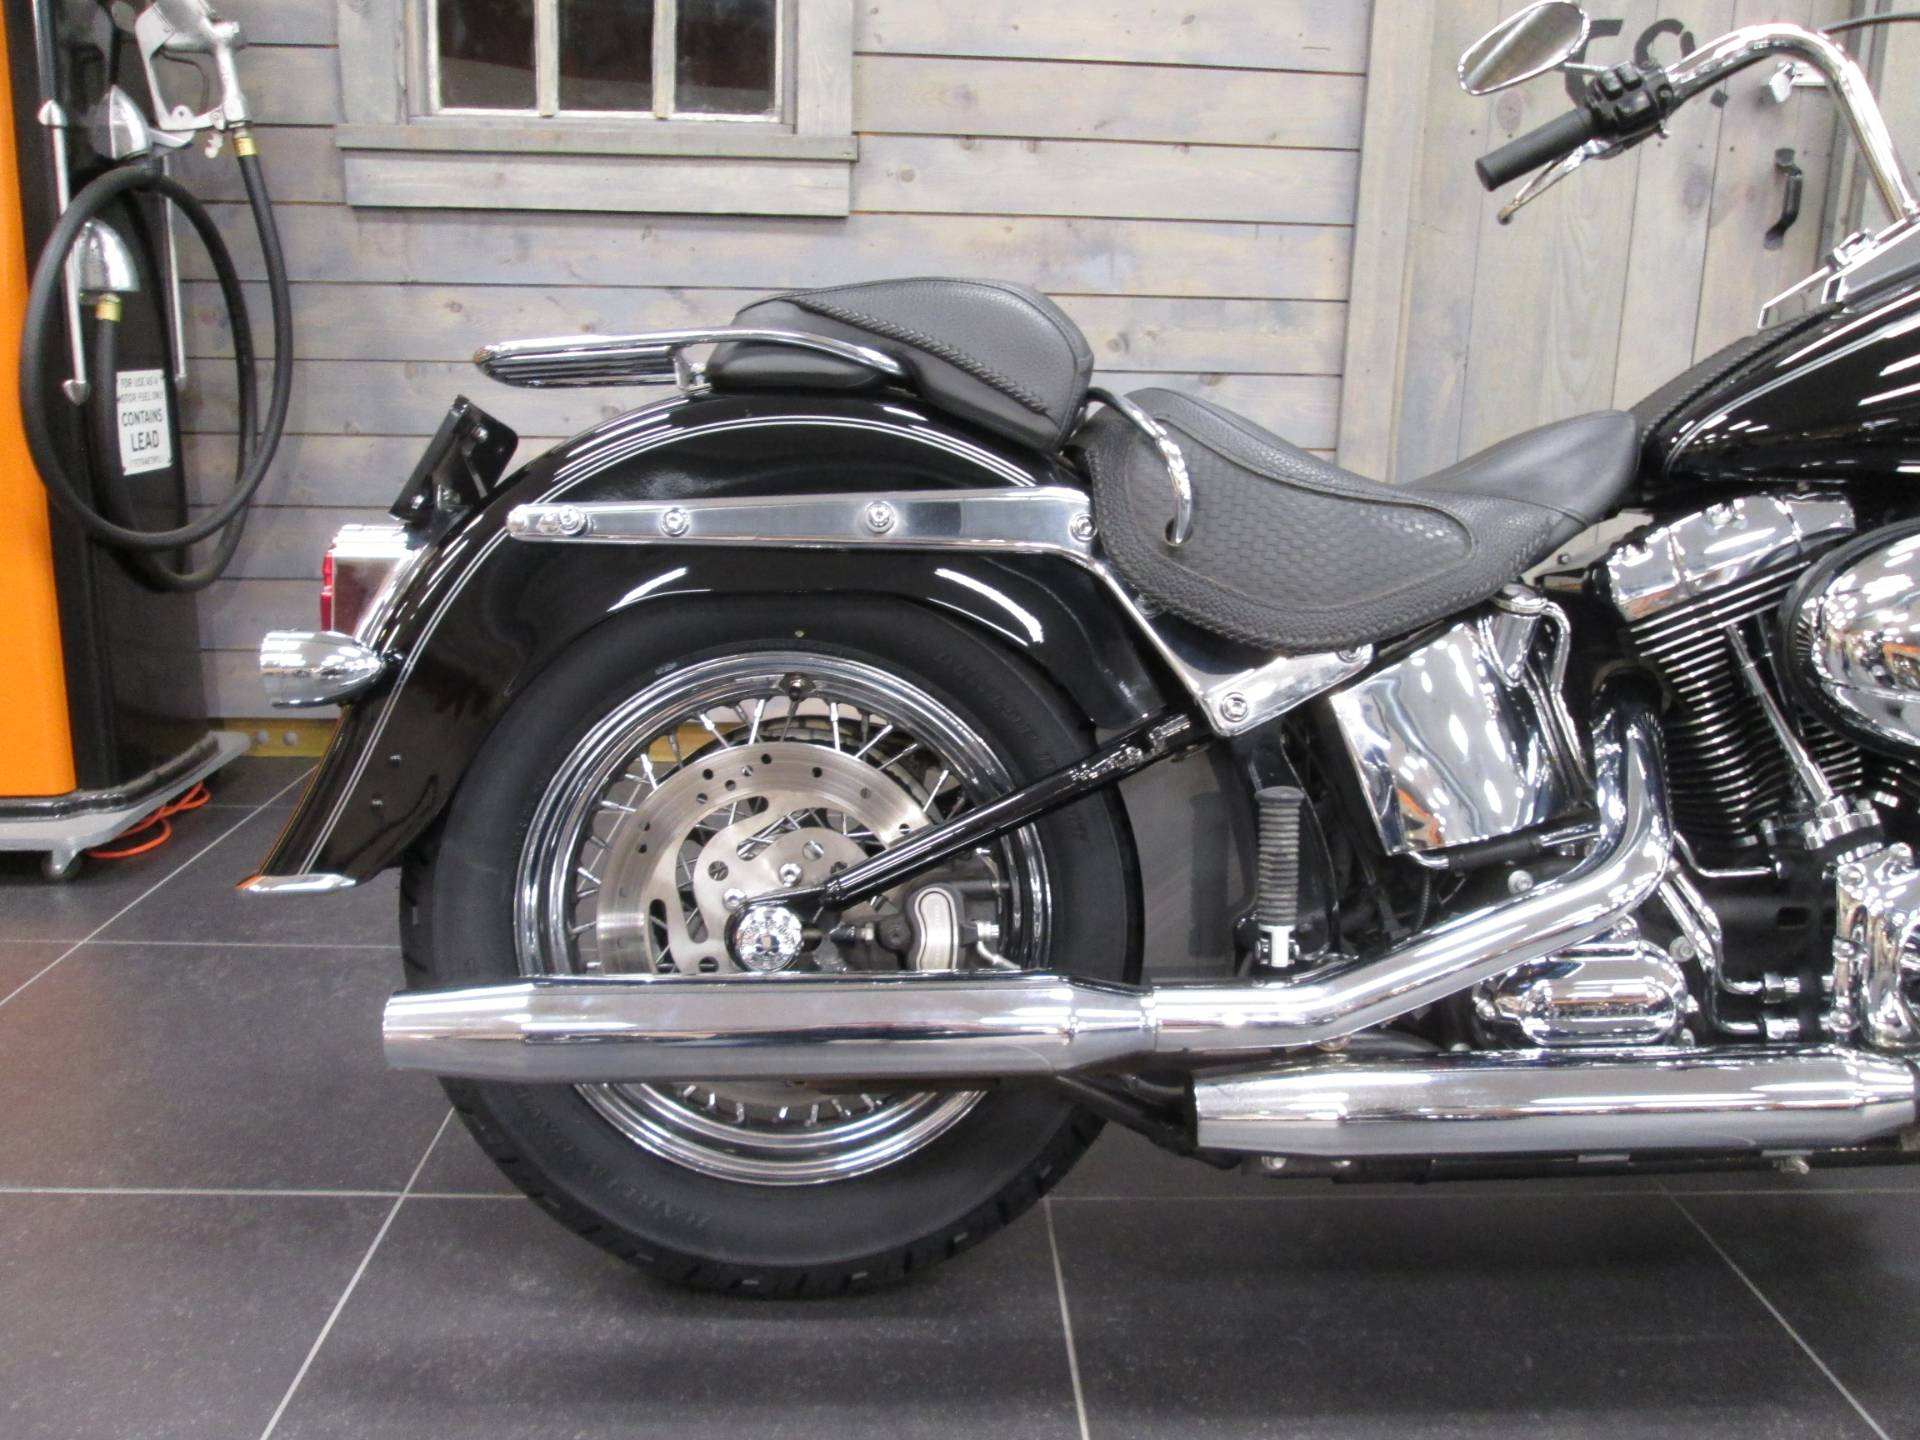 2013 Harley-Davidson Softail® Deluxe in Lafayette, Indiana - Photo 3